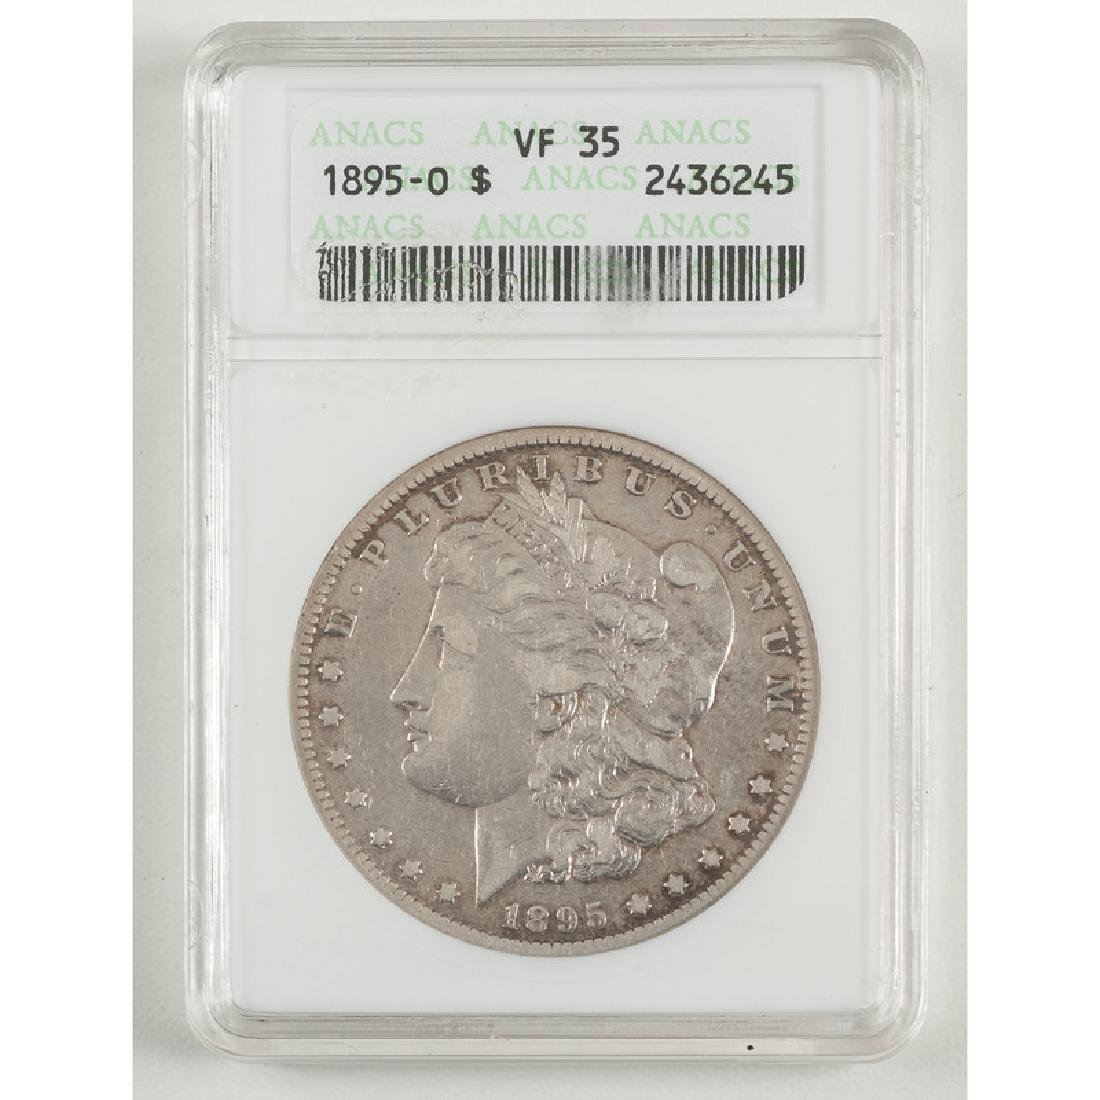 United States Morgan Silver Dollar 1895-O, ANACS VF35